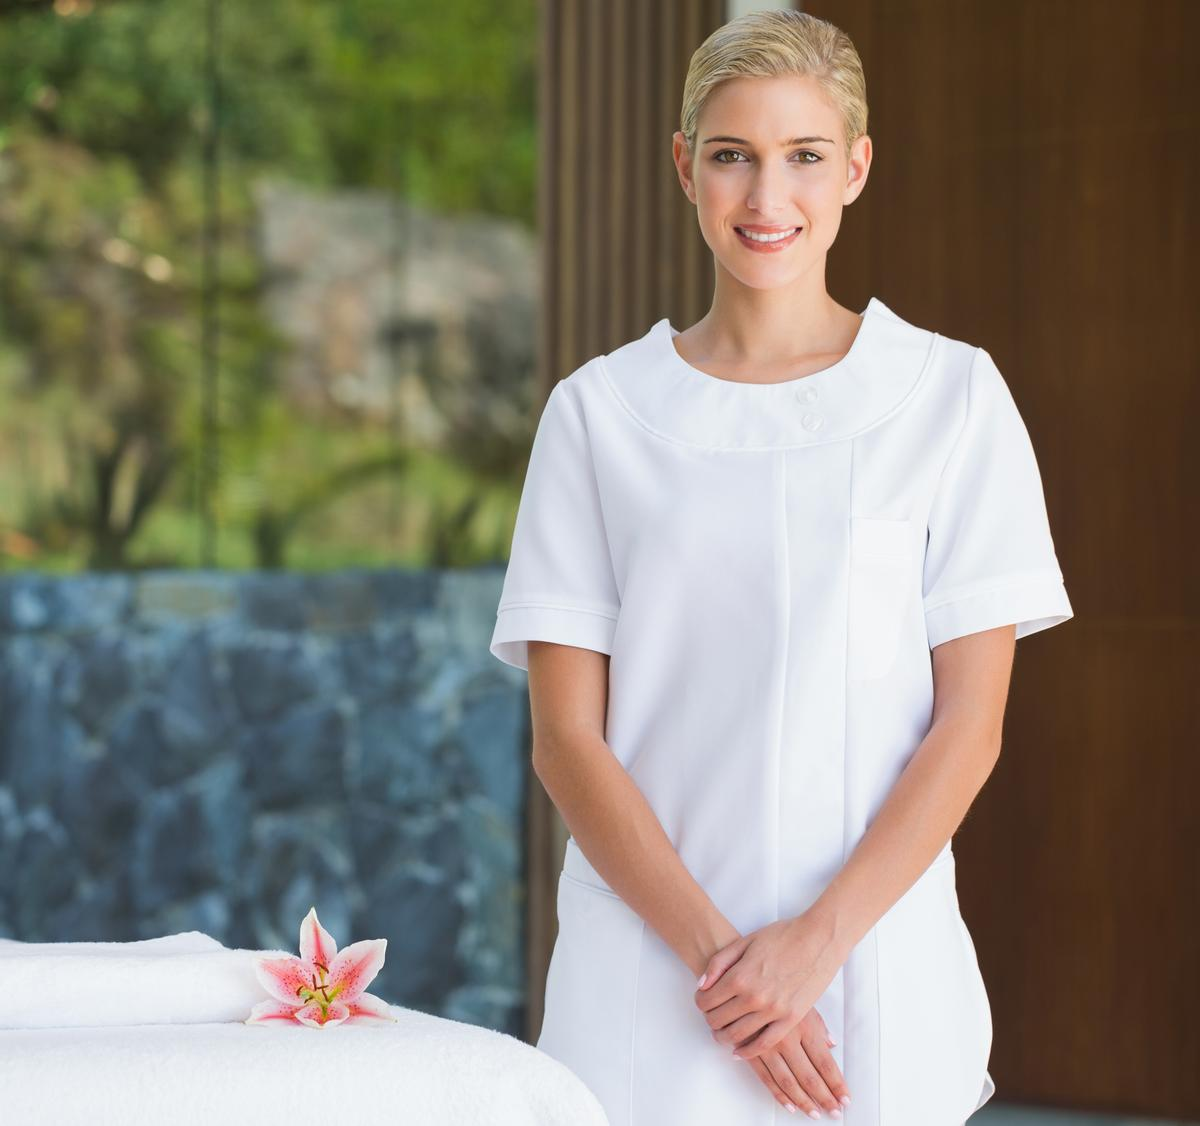 Top 10 Questions to Ask Before Opting for a Spa Service